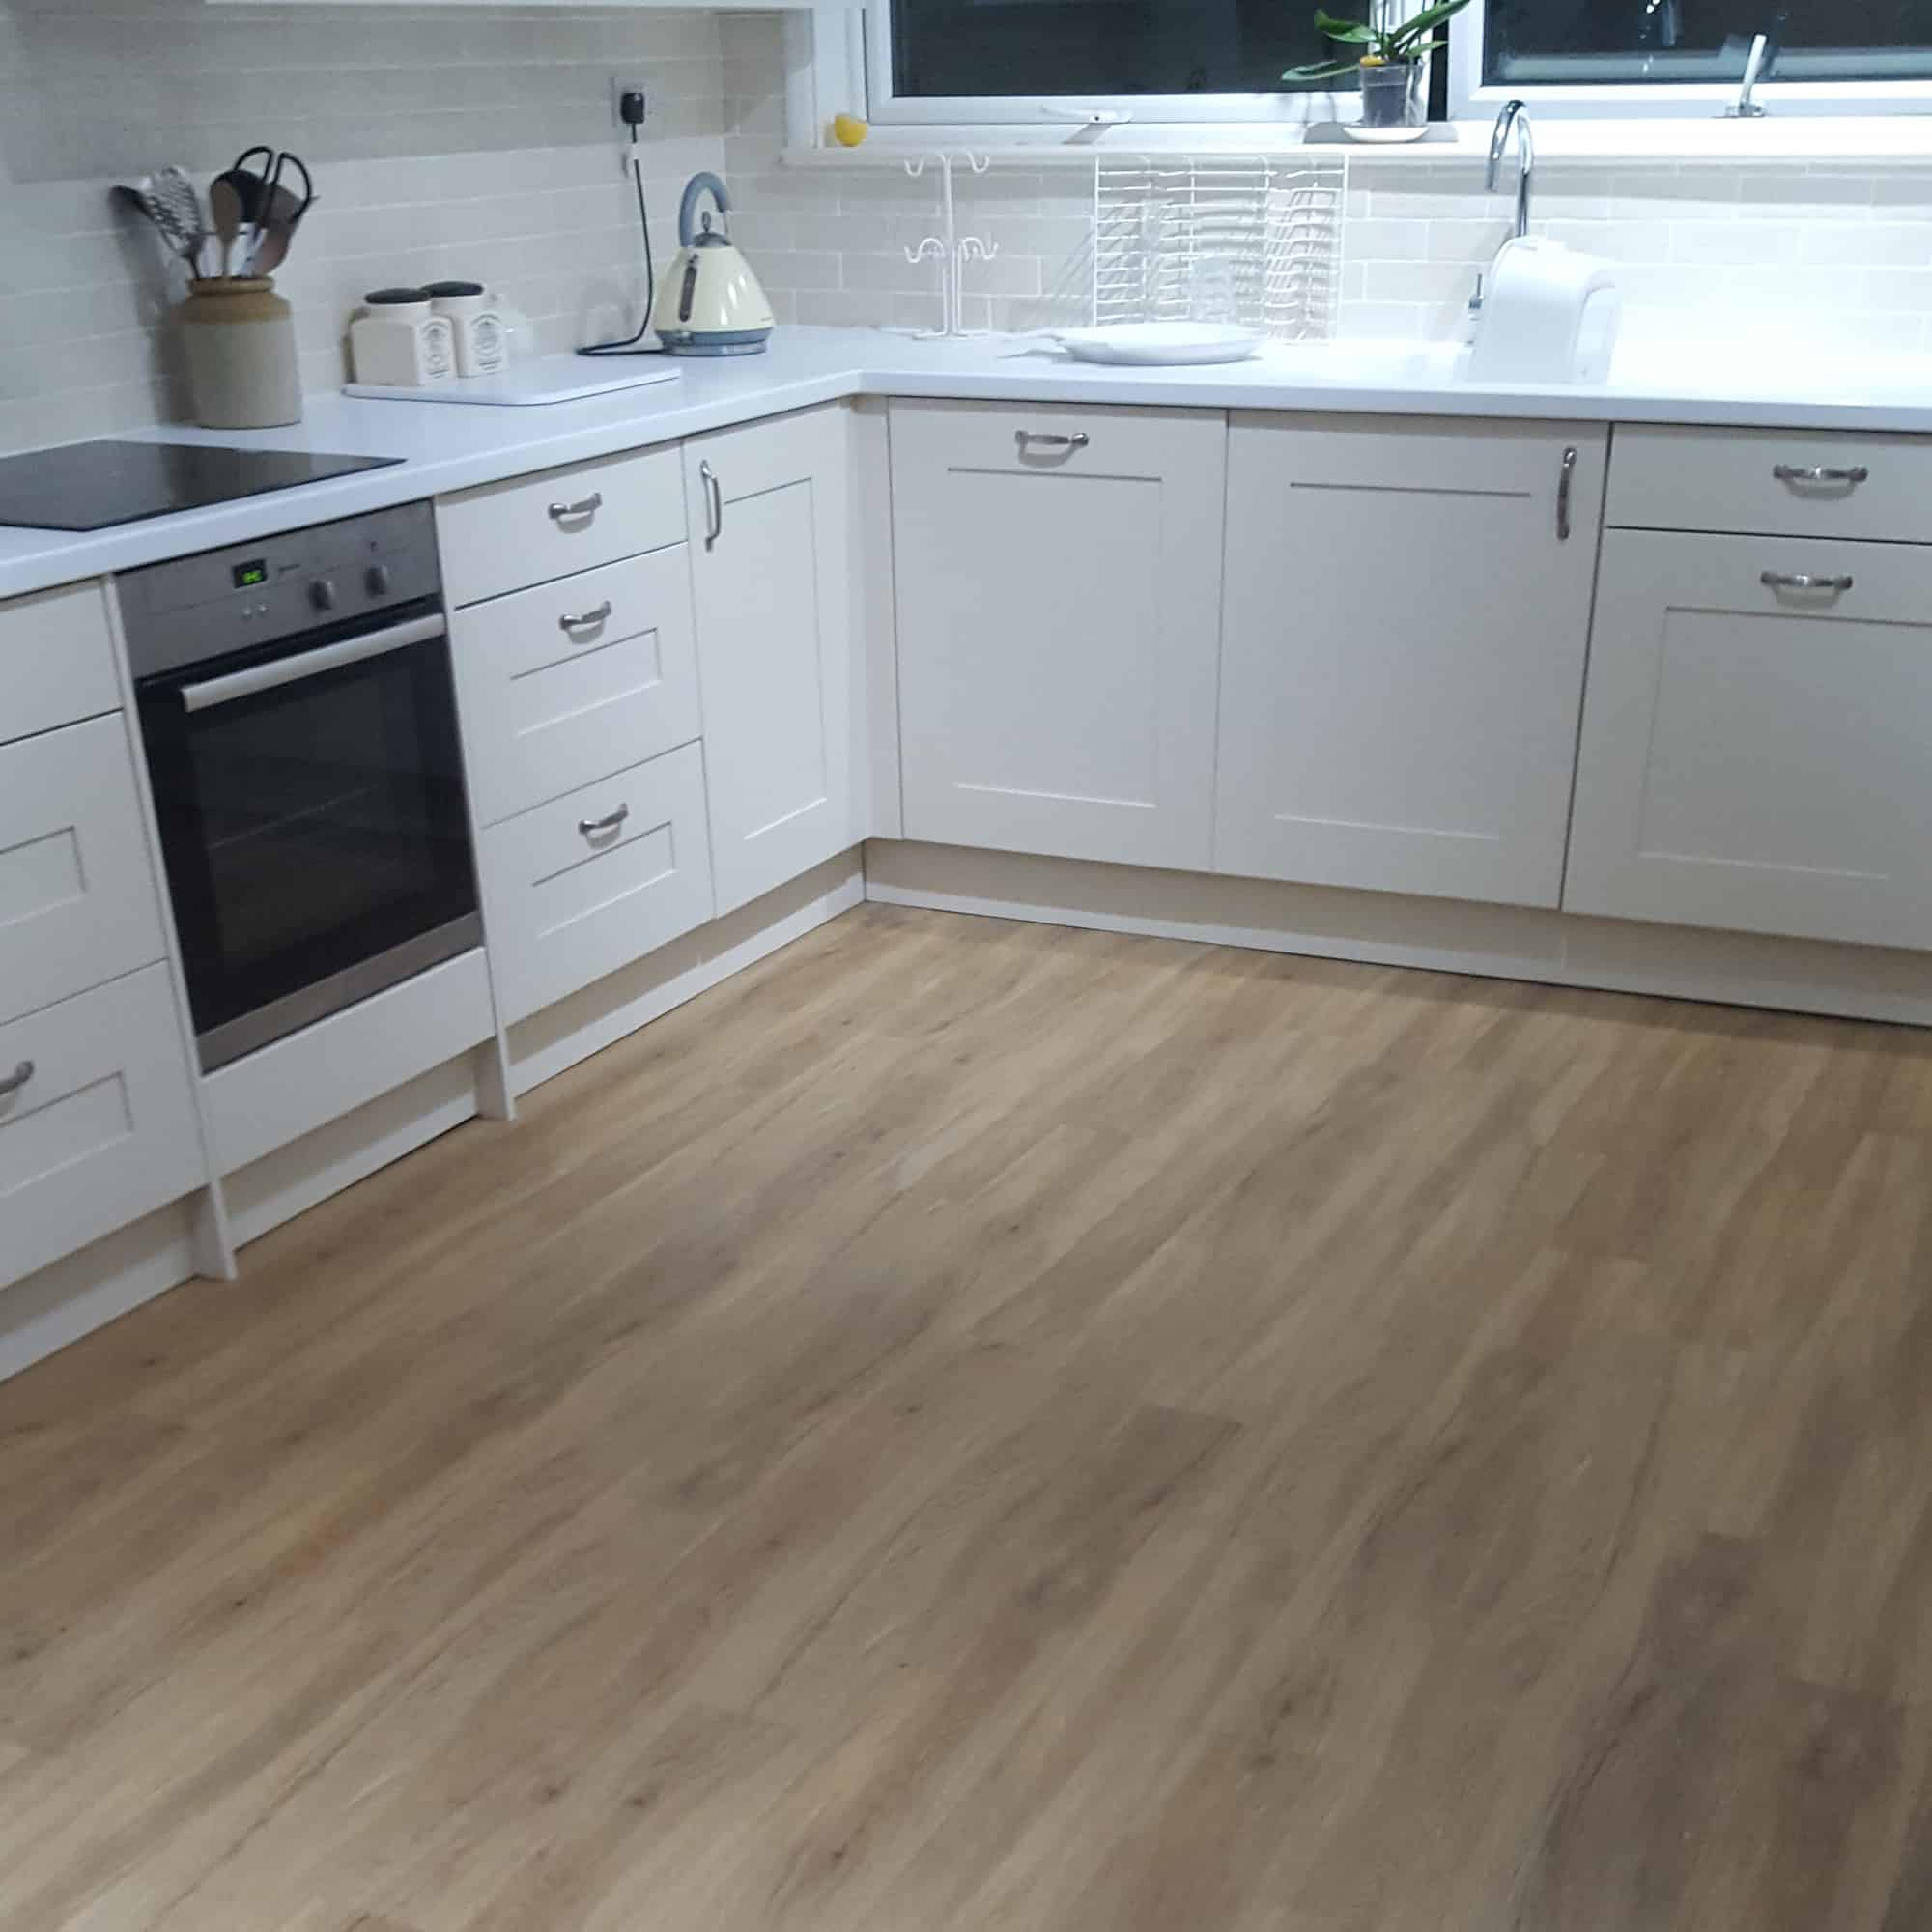 Wood effect kitchen flooring